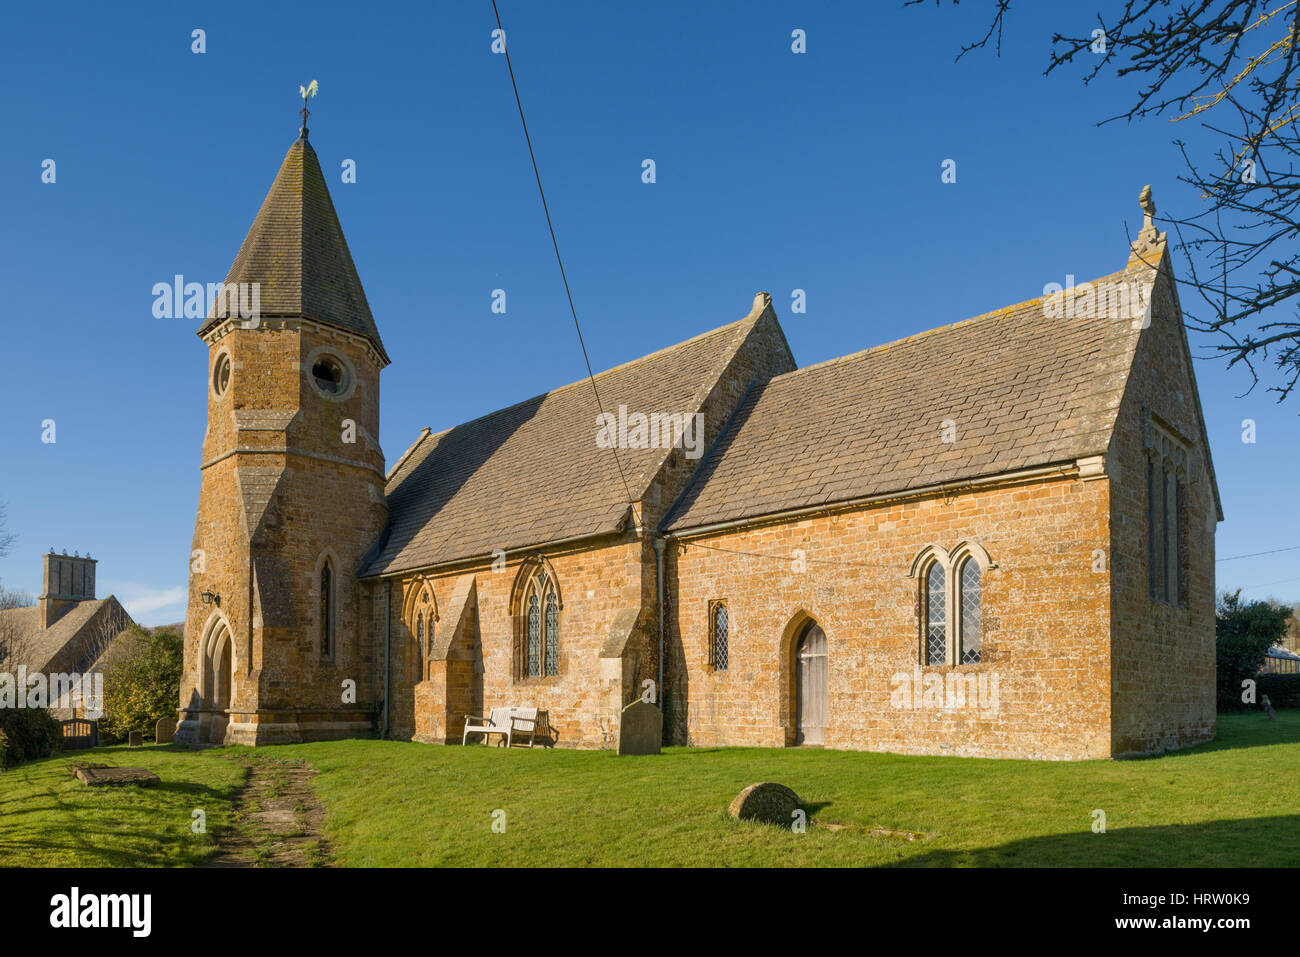 St. John`s Church, Barford St. John, Oxfordshire, England, United Kingdom - Stock Image